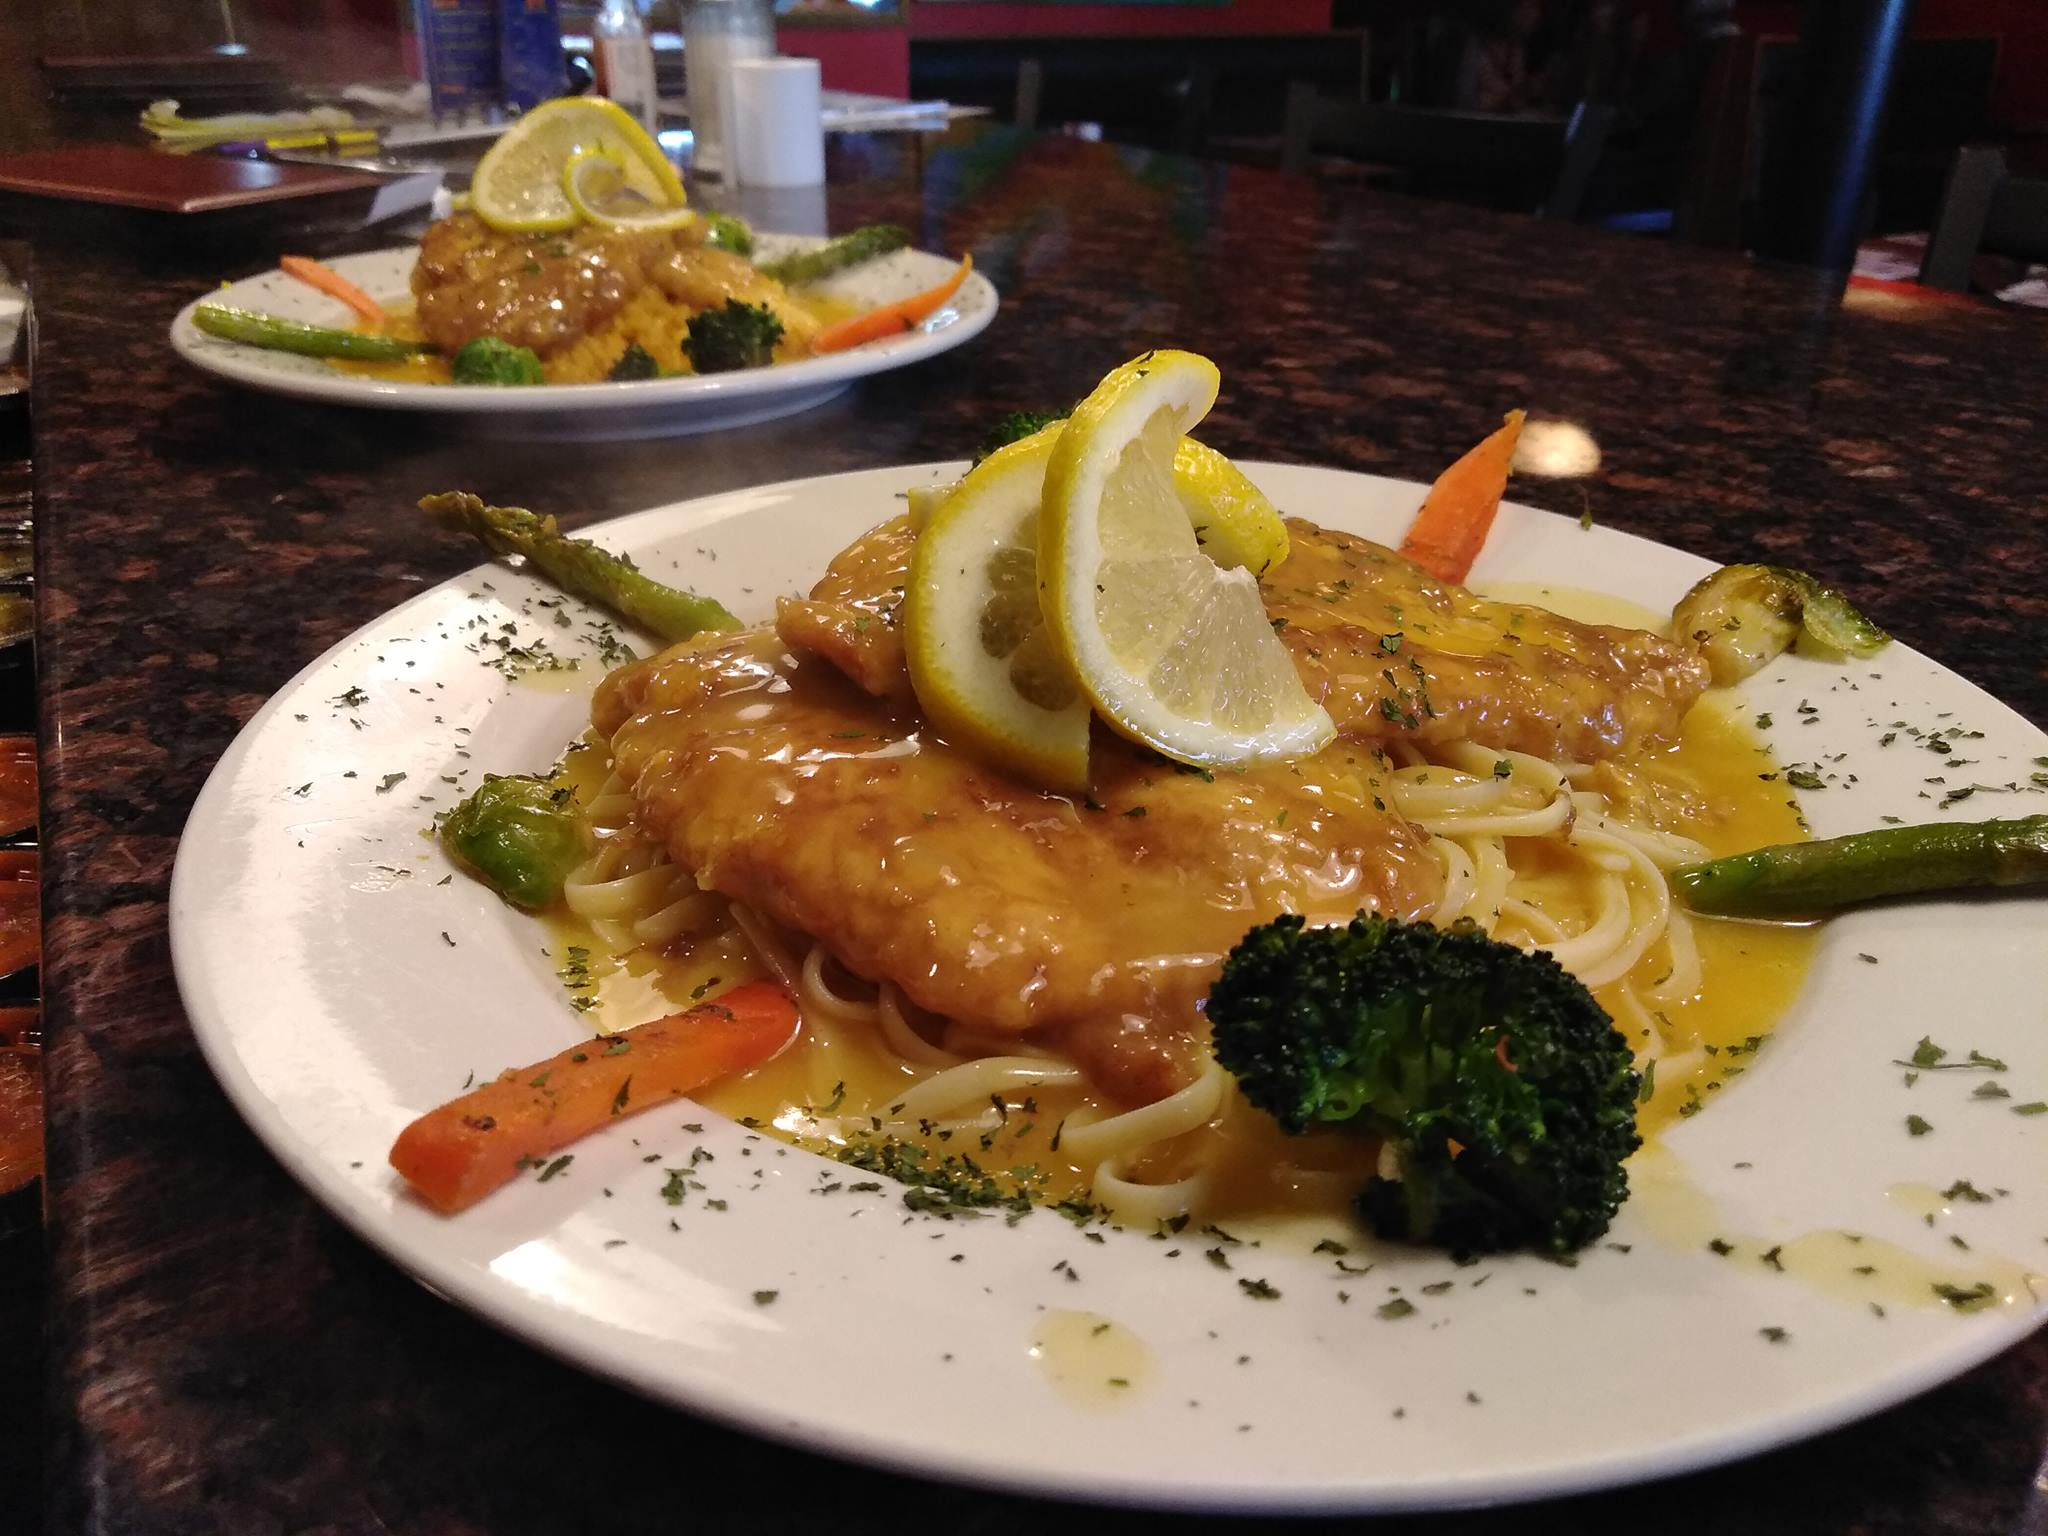 Chicken Francaise with pasta and sauteed vegetables and a lemon wedge